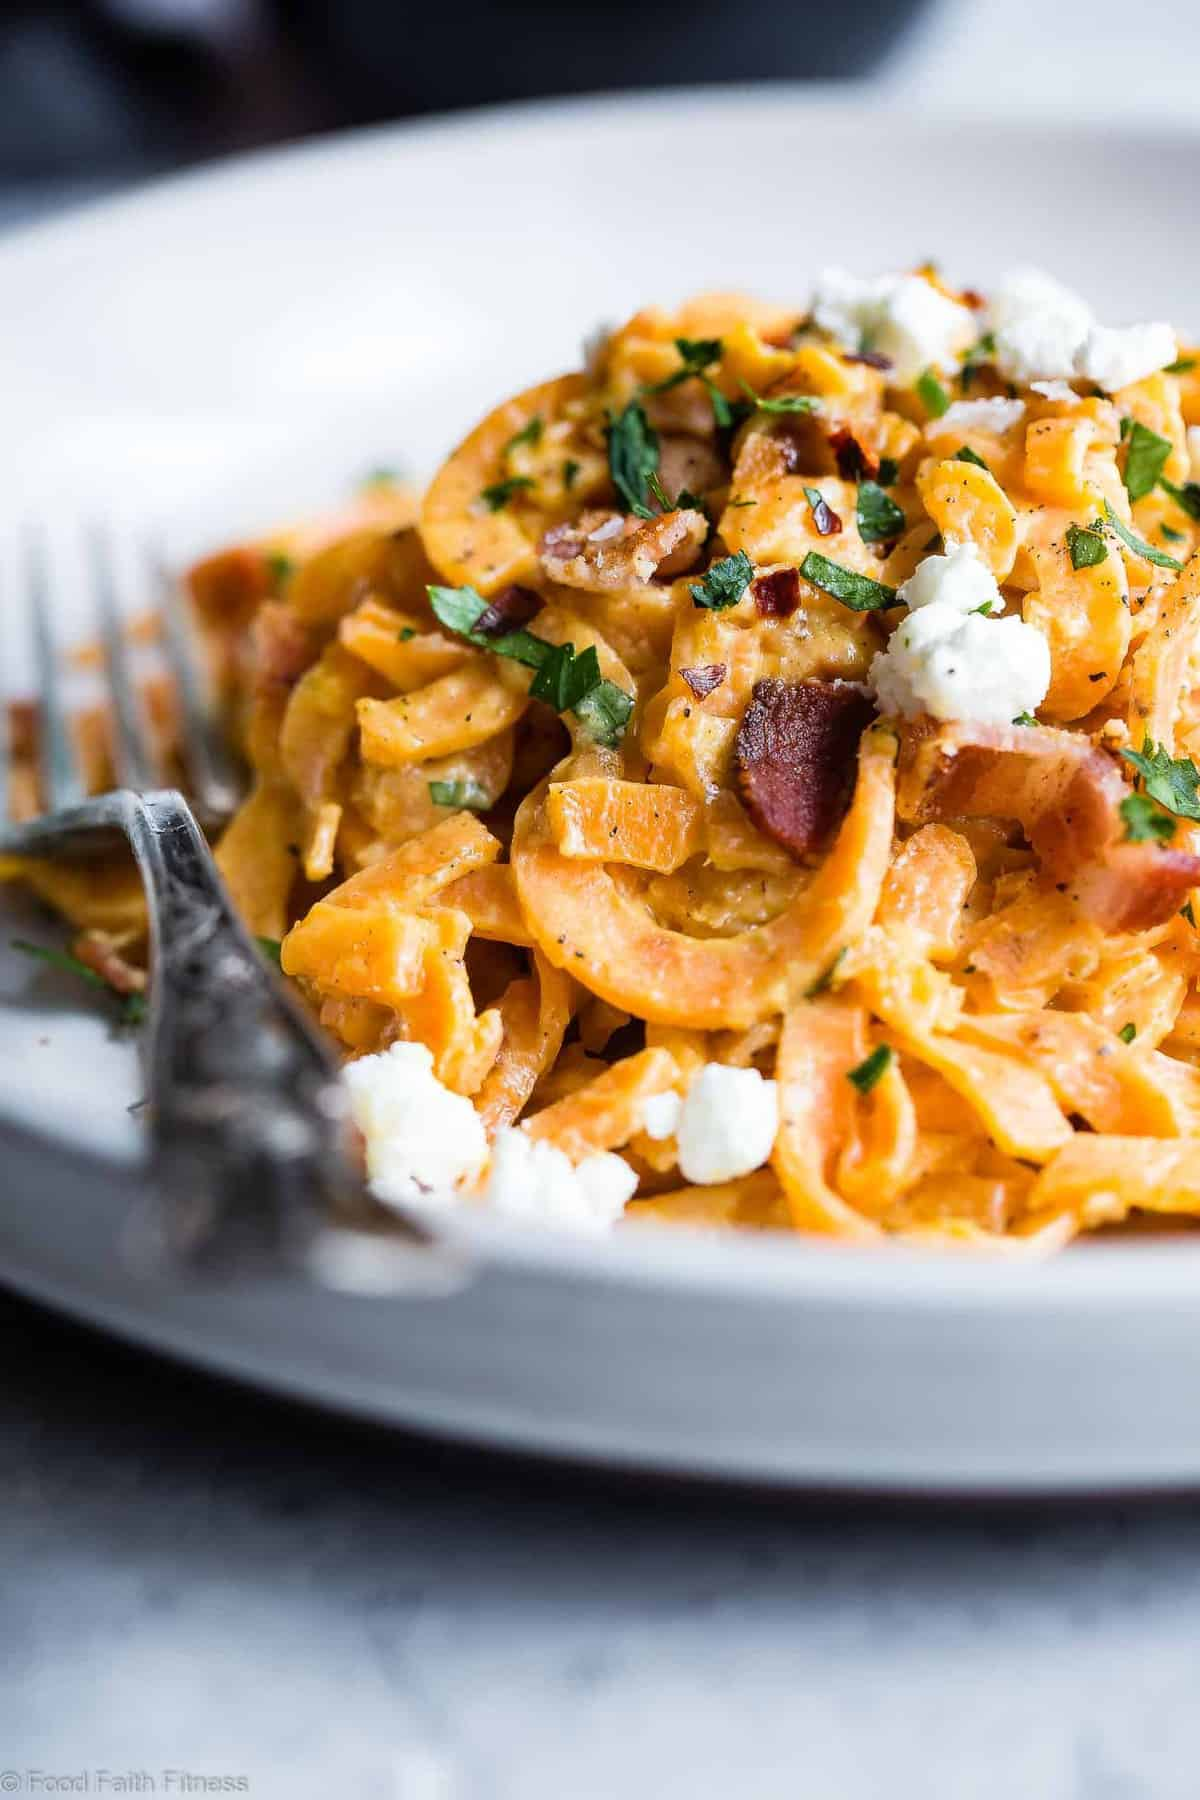 Healthy Sweet Potato Noodle Carbonara -A healthy and gluten free twist on the classic carbonara recipe that uses goat cheese to make it extra creamy! Quick, easy, family friendly and only 4 ingredients! Even picky eaters will LOVE it! | #Foodfaithfitness | #Glutenfree #Healthy #Spiralized #Grainfree #Sweetpotato